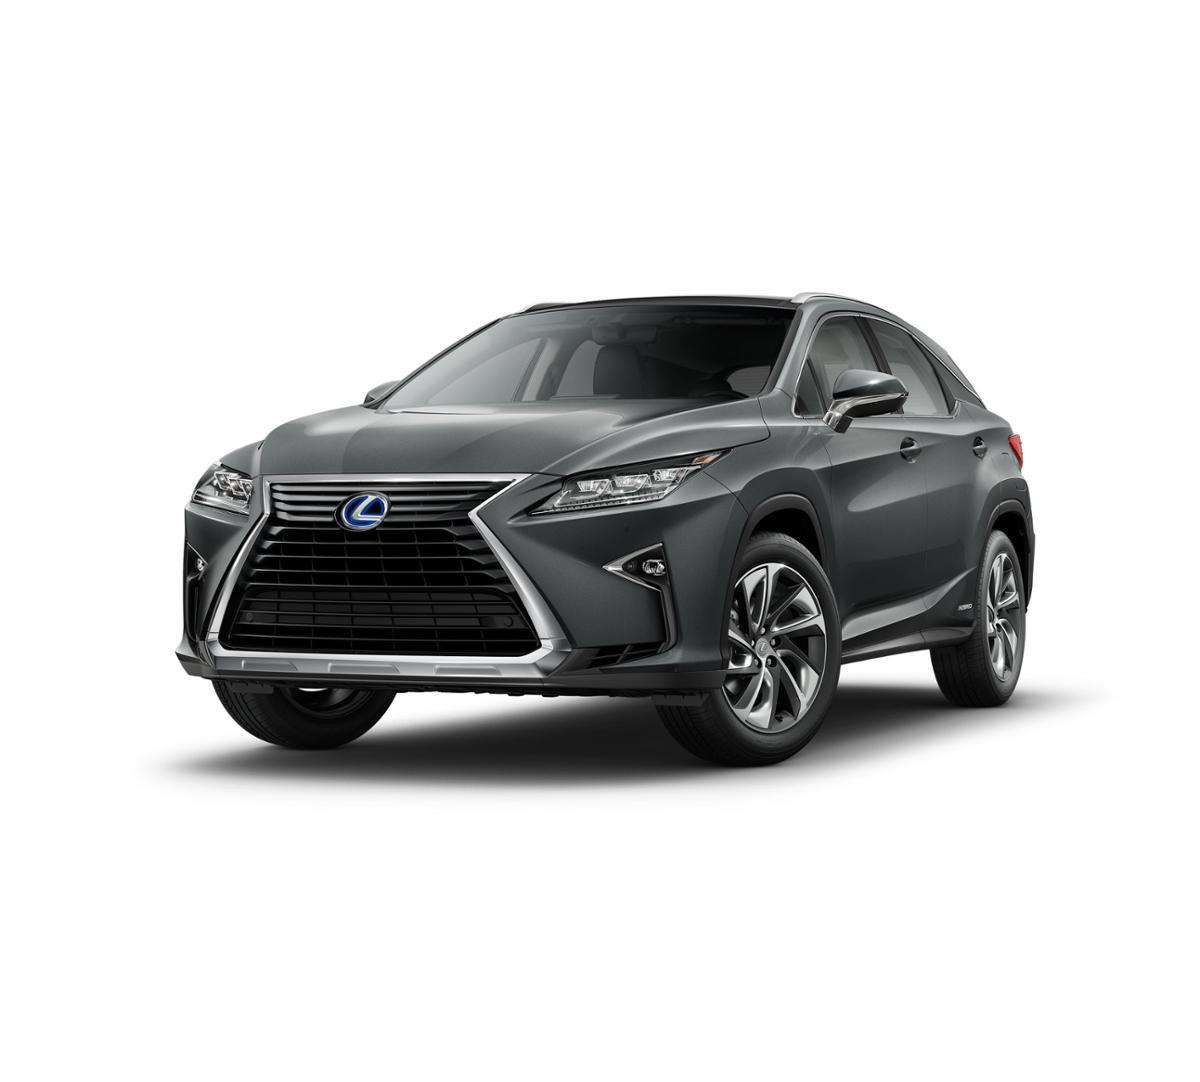 2019 Lexus RX 450h Vehicle Photo in Las Vegas, NV 89146